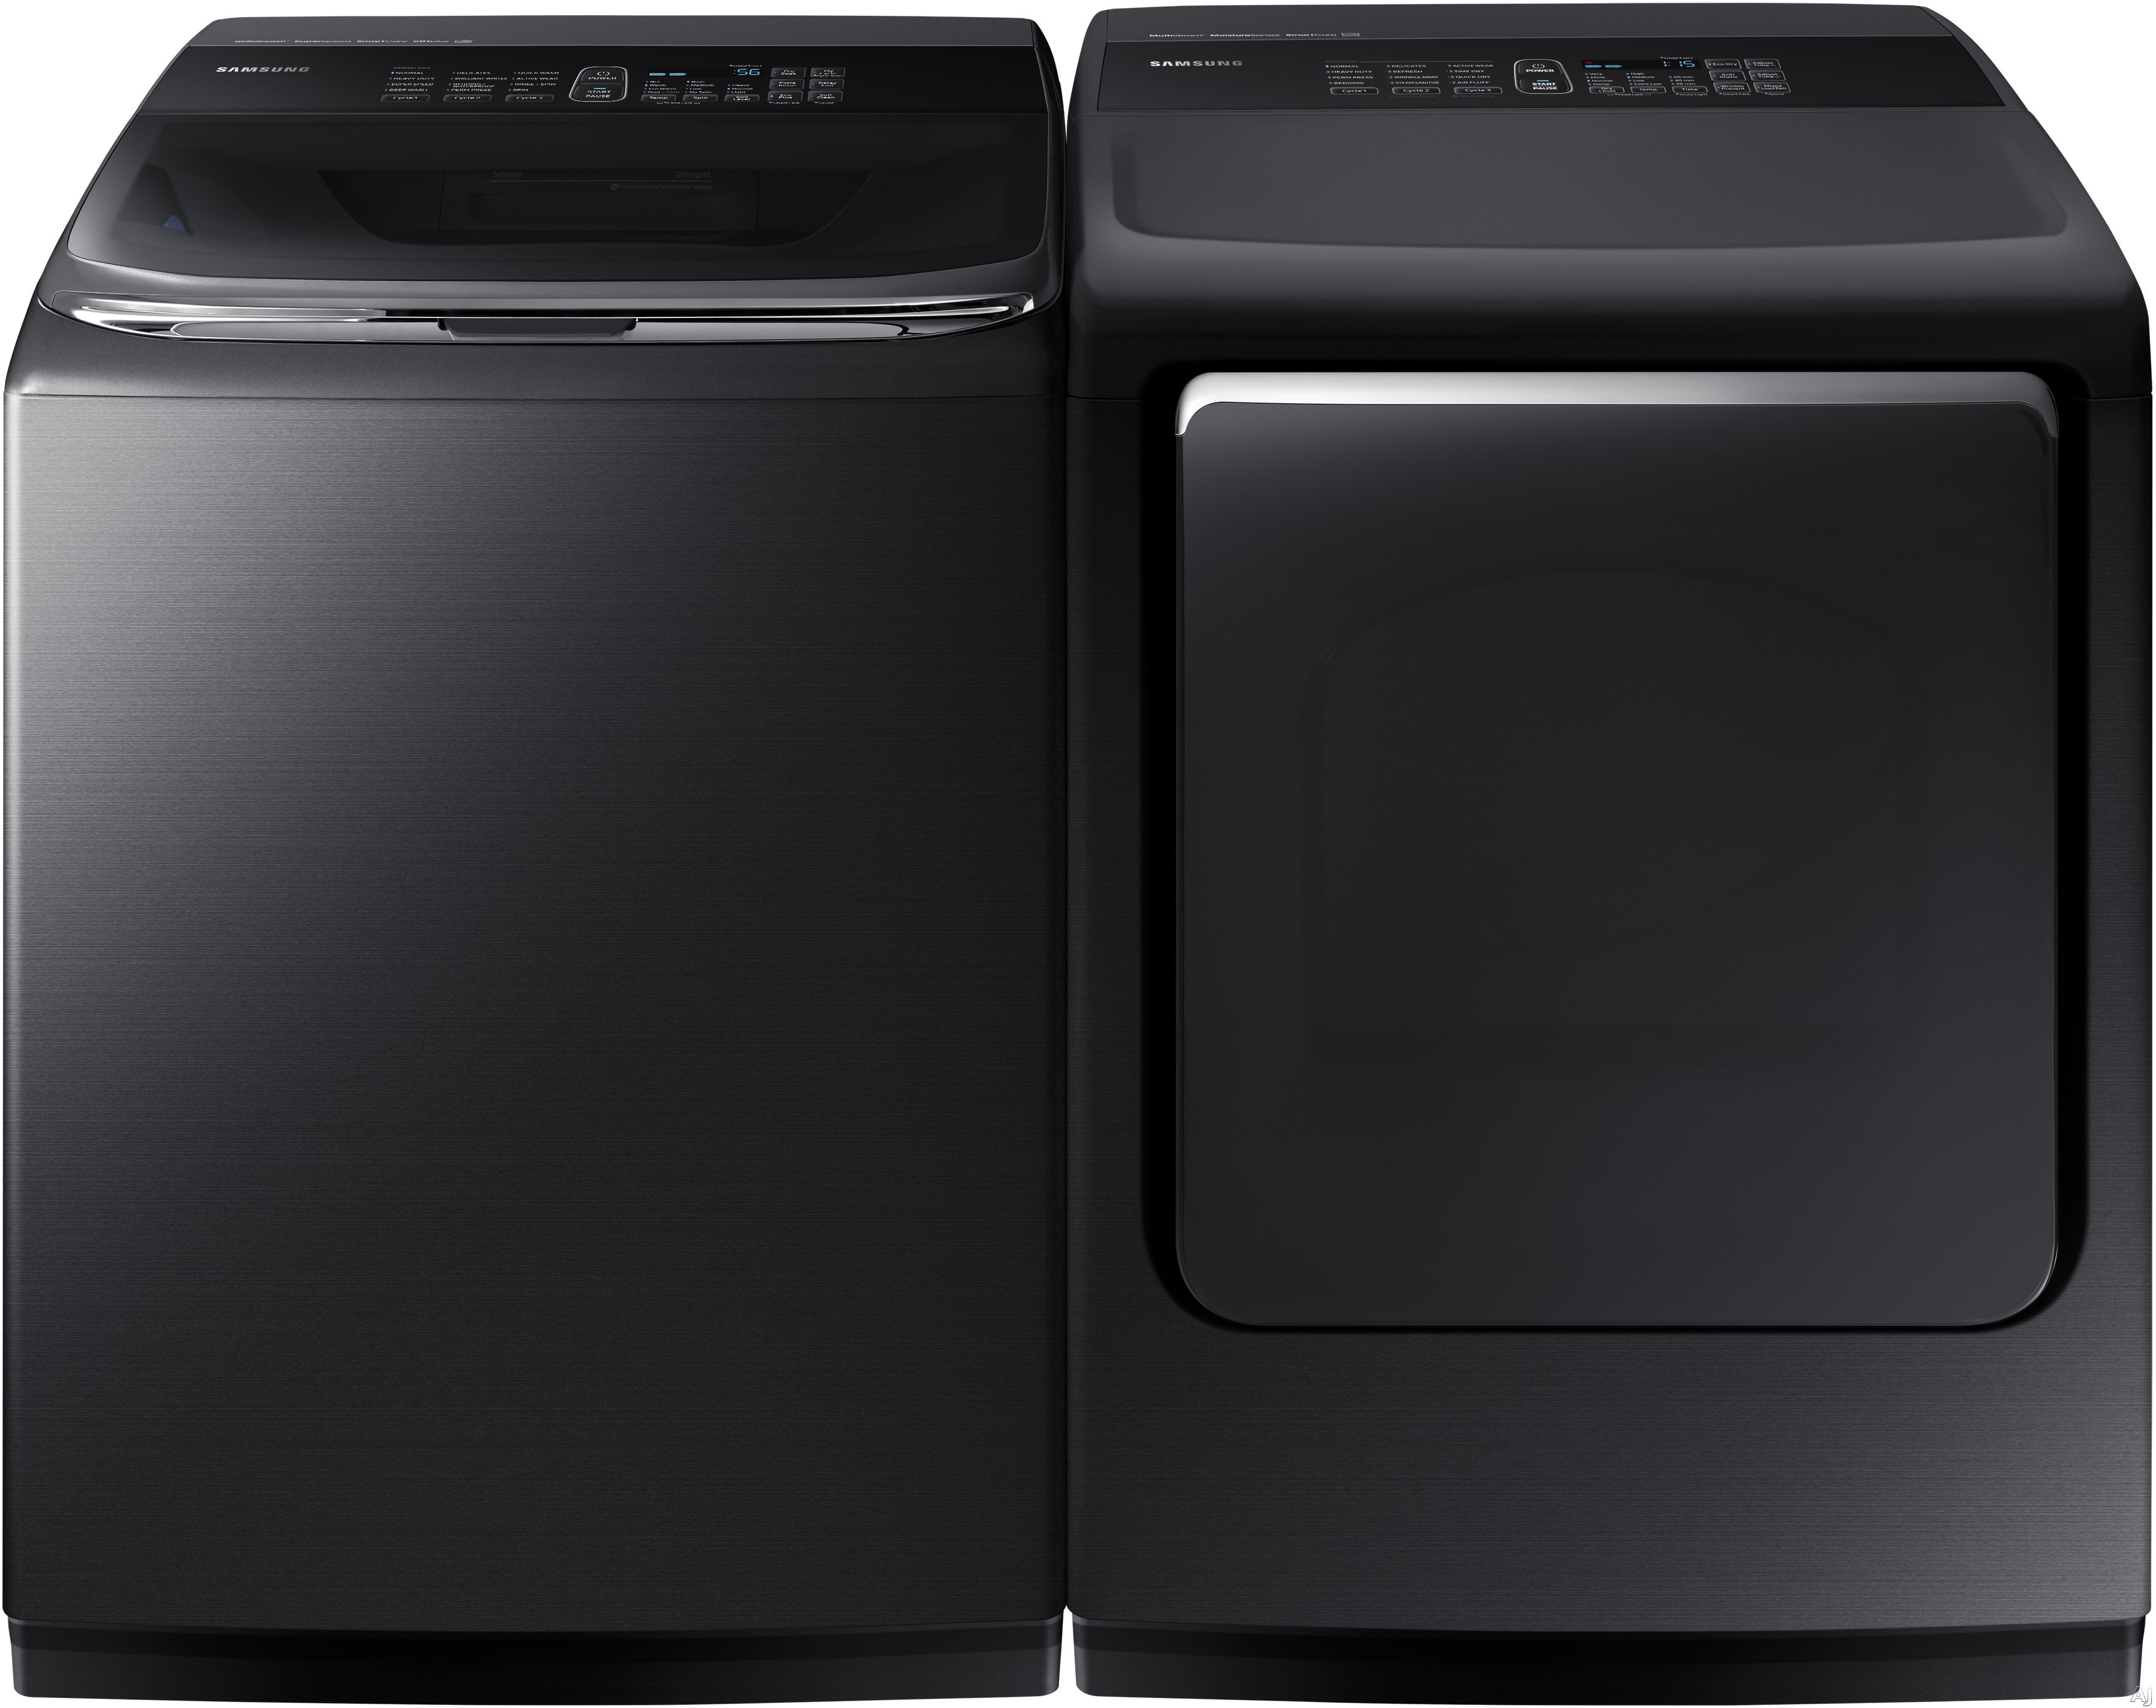 Samsung Sawadrgbs2 Side By Side Washer Amp Dryer Set With